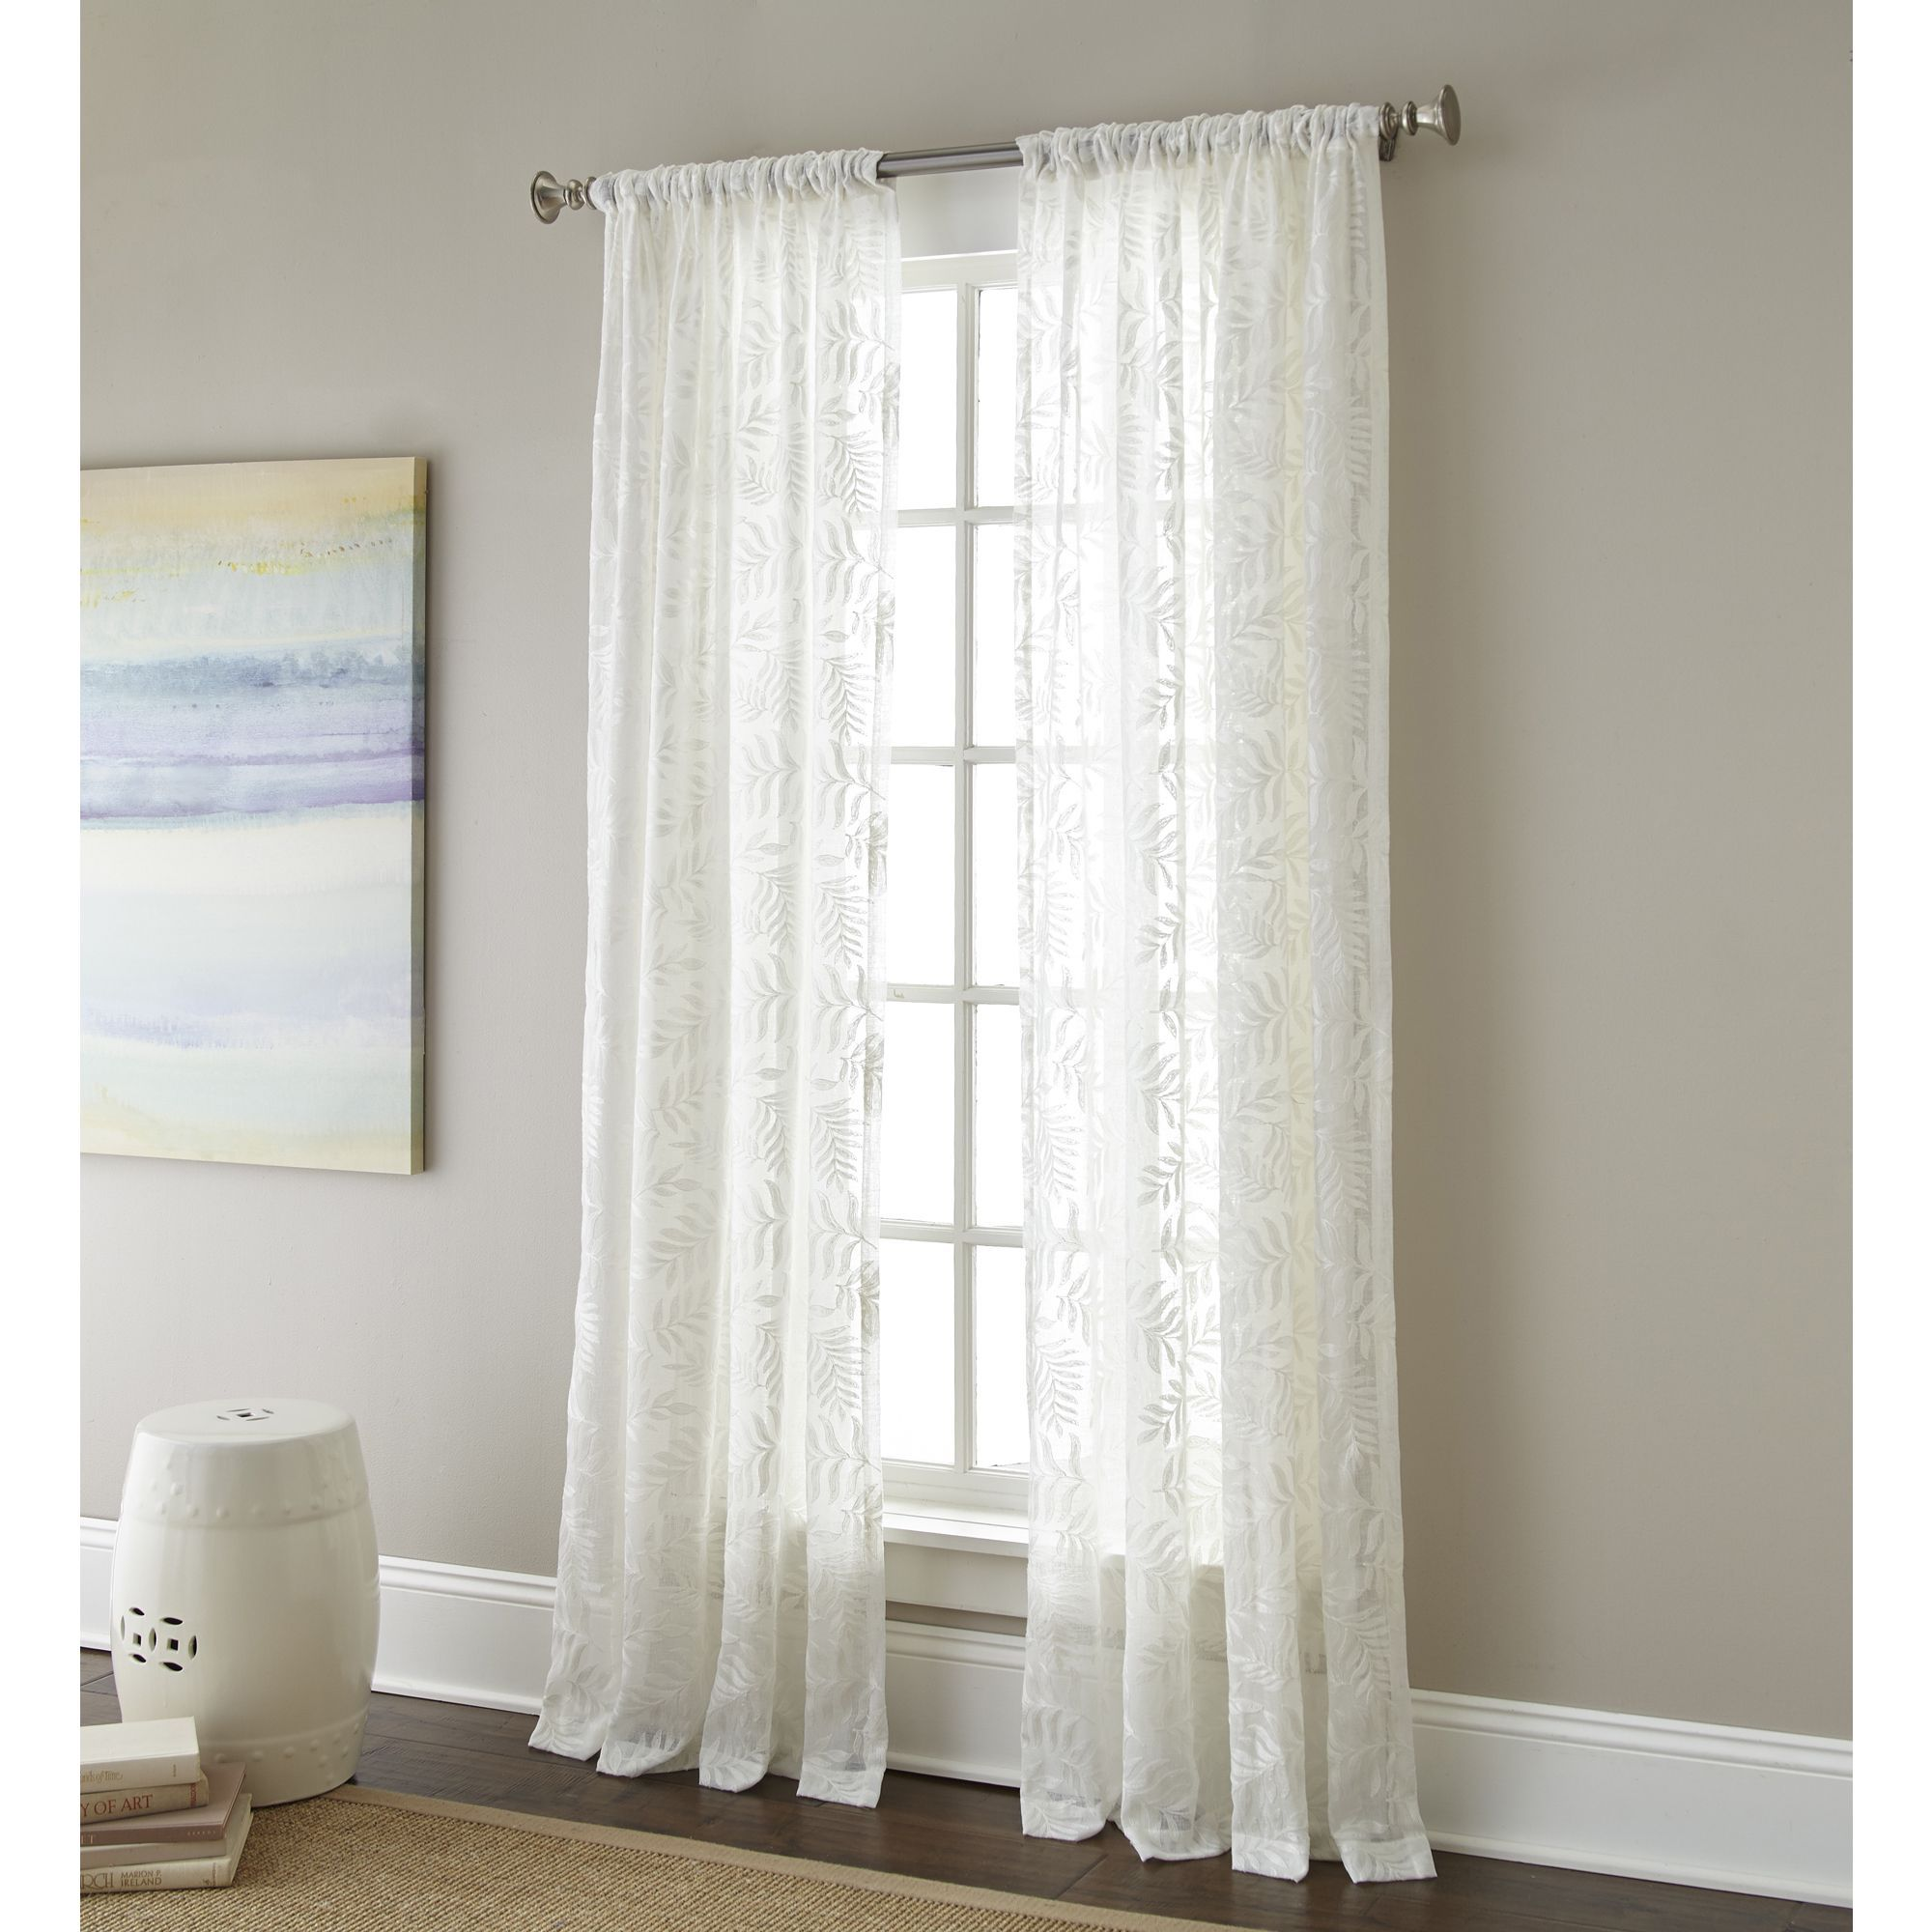 Their 100 Percent Polyester Construction Prevents Wrinkles Stains And Tears To Make These Sheer Embroidered Curtain Panels As Durabl New Great Room Curtains Panel Curtains Sheer Curtain Panels